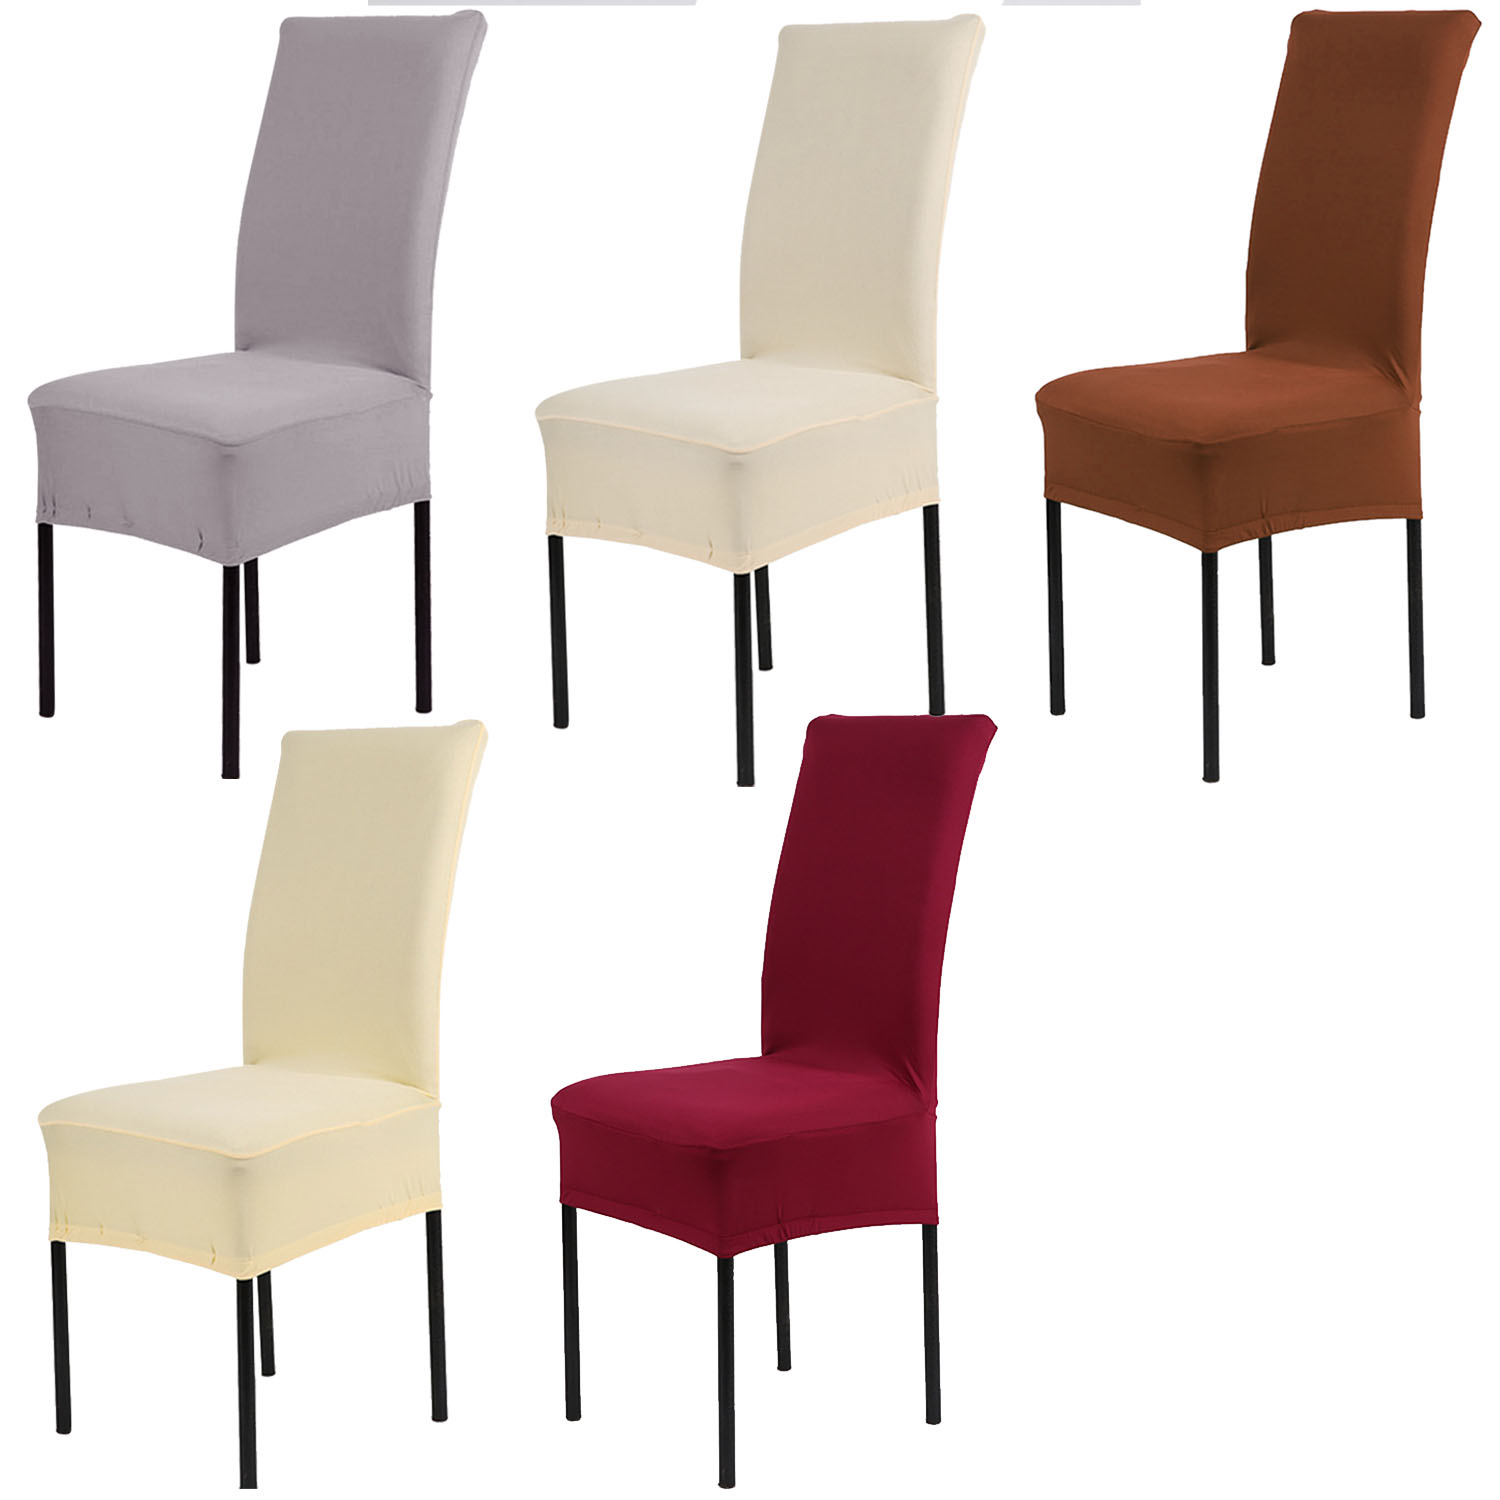 Popular Cover for Chair Seat Buy Cheap Cover for Chair Seat lots